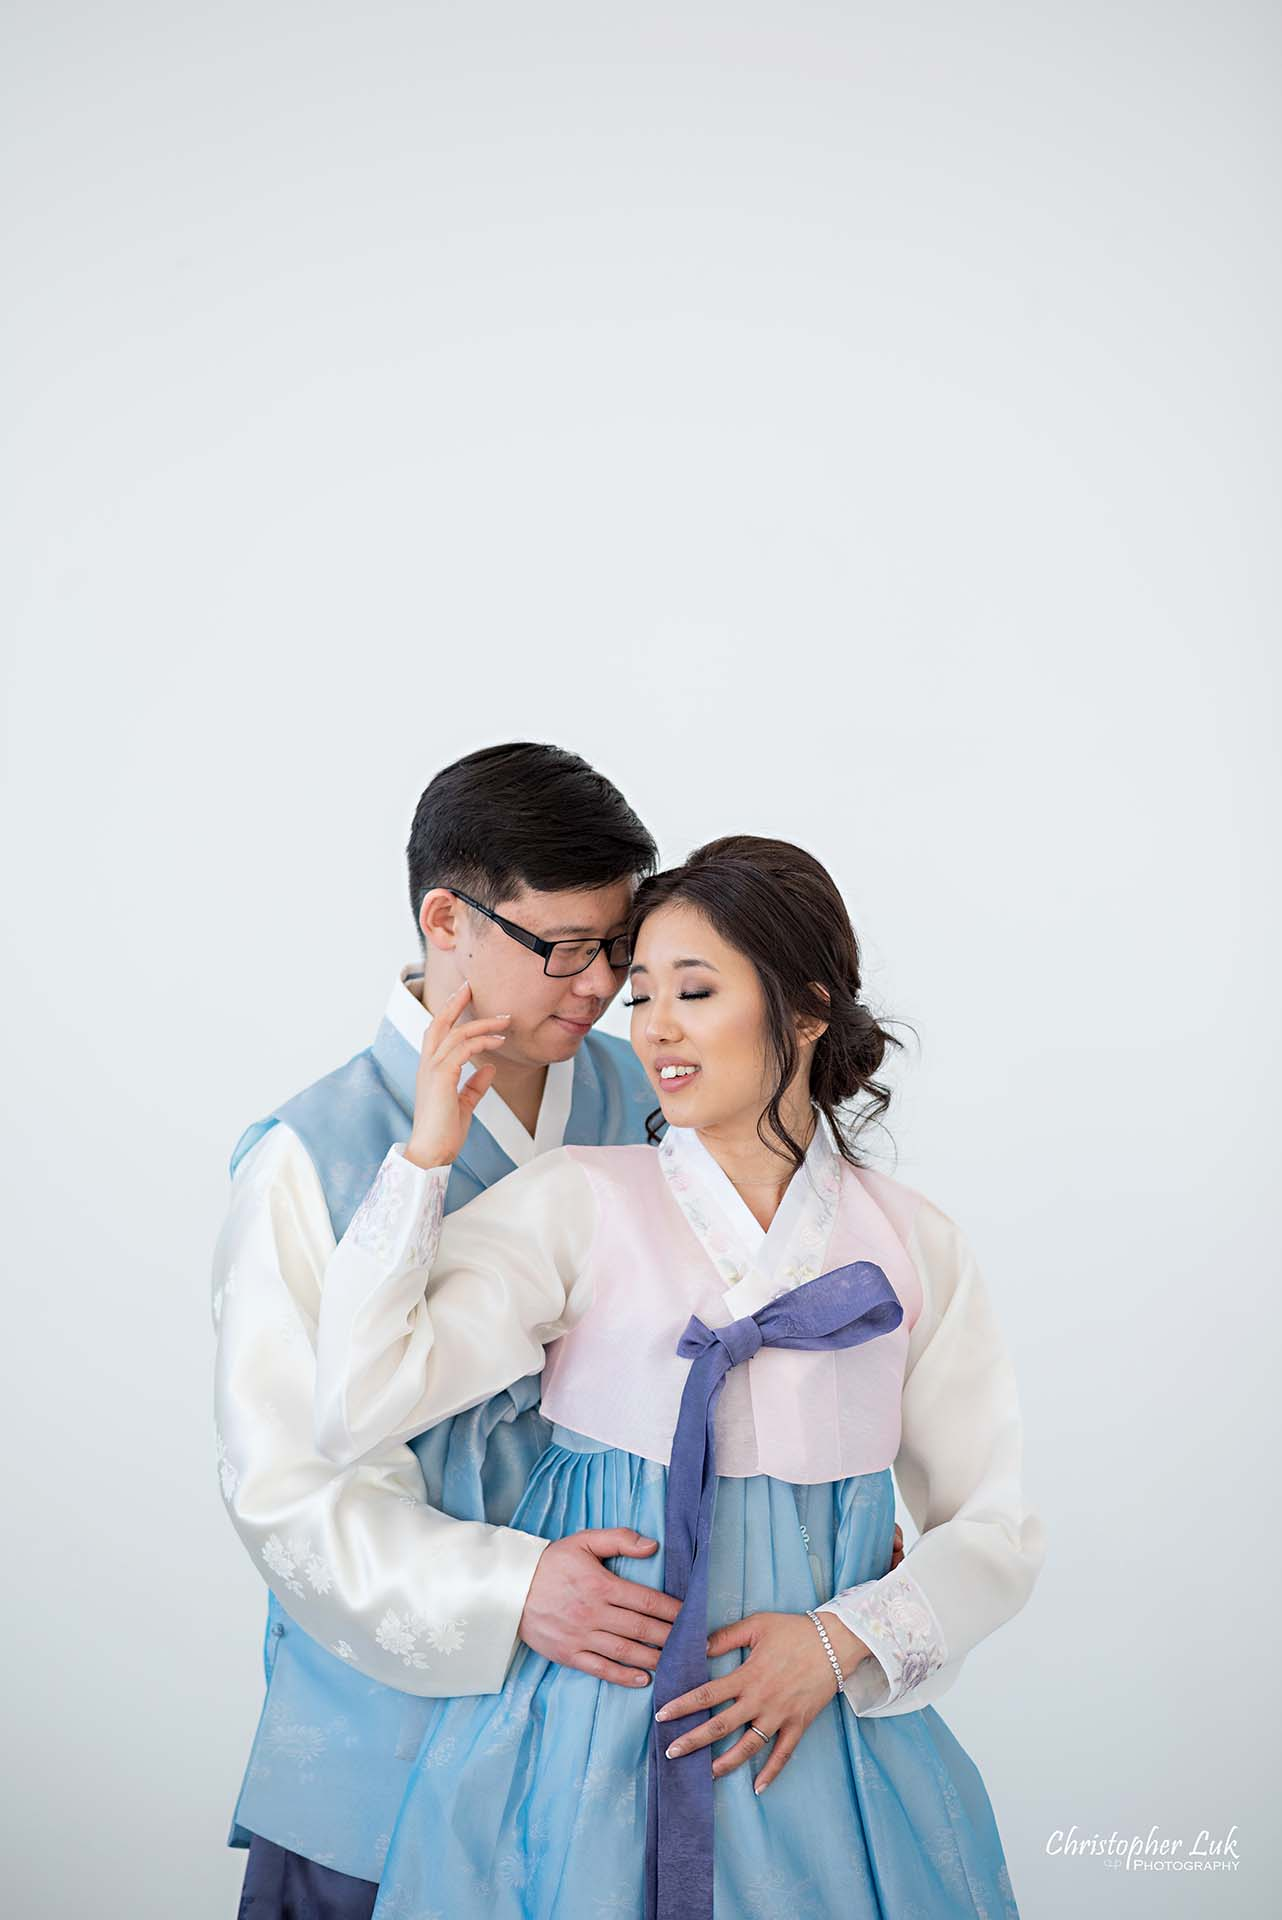 Christopher Luk Toronto Wedding Photographer - Mint Room Studios Bride Groom Natural Candid Photojournalistic Conservatory Ballroom Korean Drama Hanbok Hold Hug Each Other Intimate Close